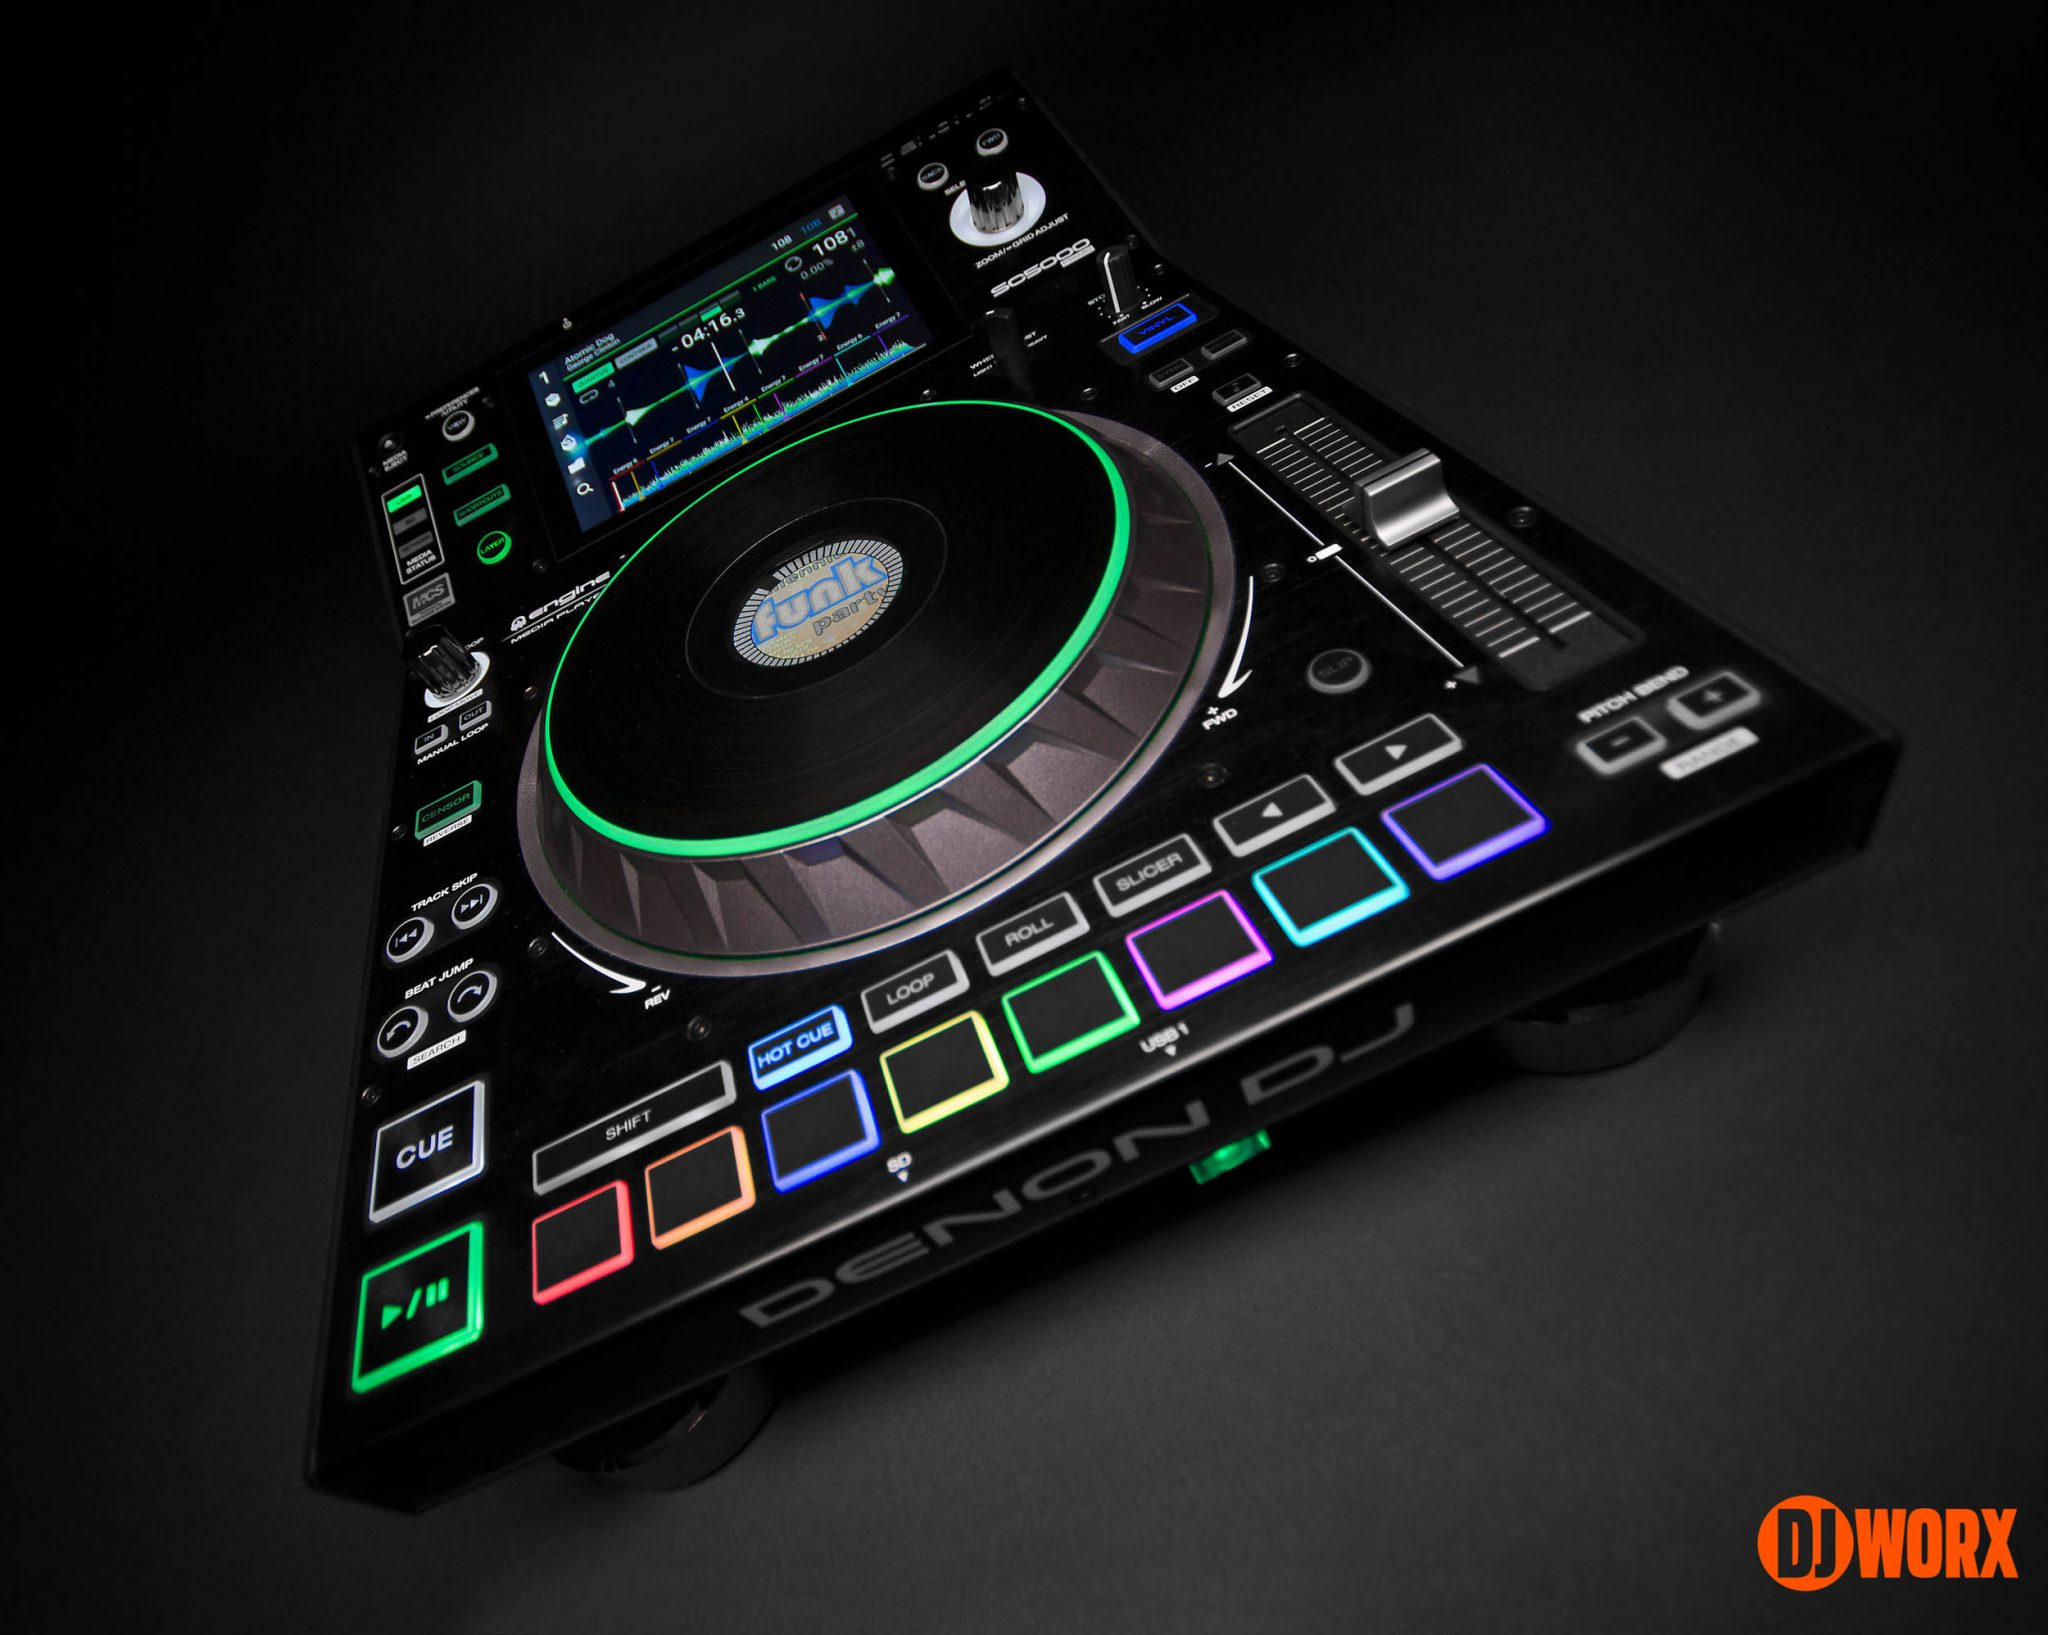 REVIEW: Denon DJ SC5000 Prime media player | DJWORX